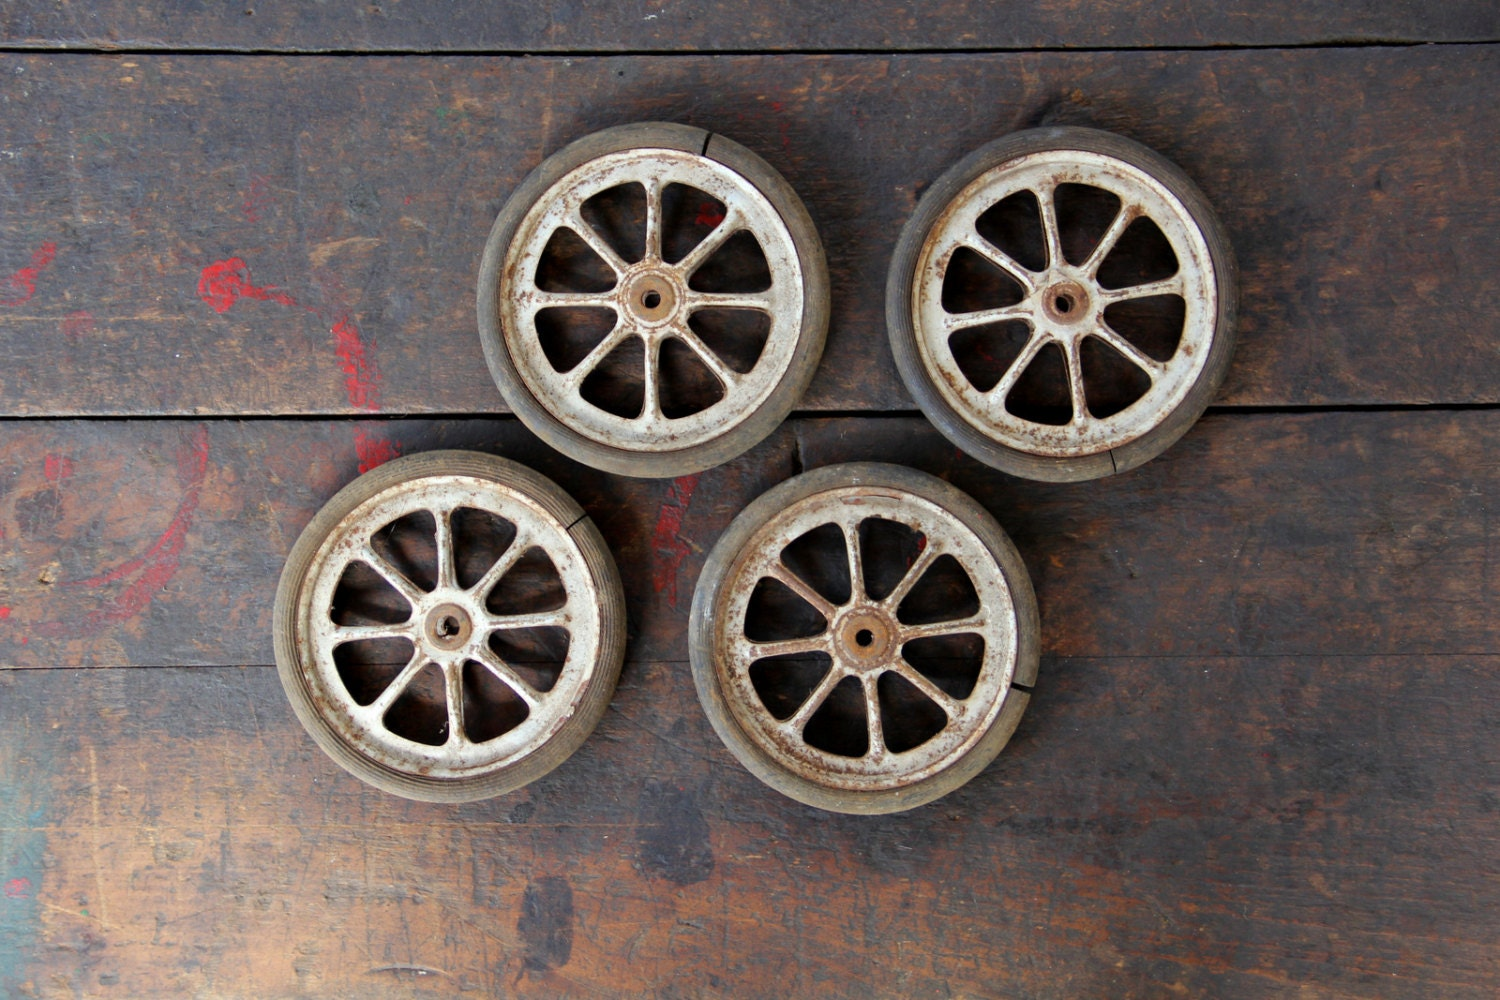 Antique Buggy Wheels Vintage Stroller Wheels Vintage Spoked